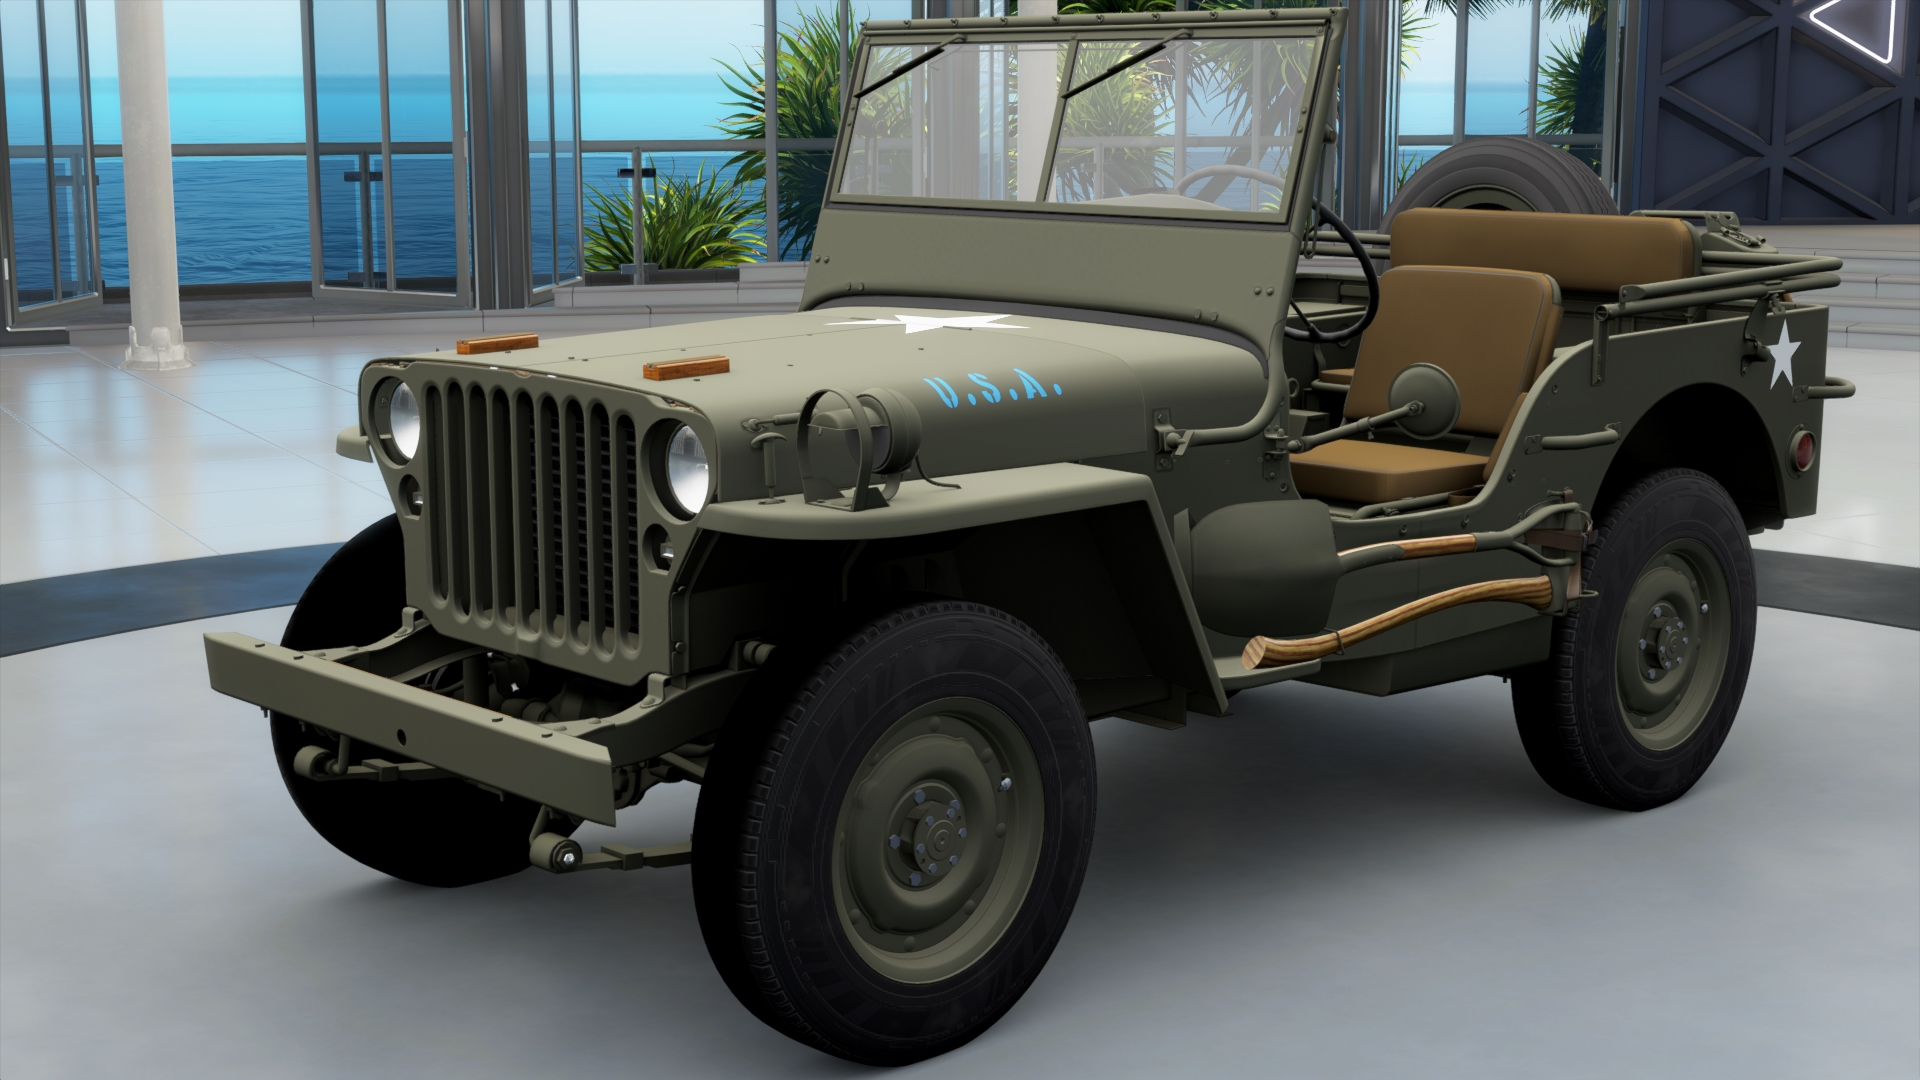 jeep willys mb forza motorsport wiki fandom powered by. Black Bedroom Furniture Sets. Home Design Ideas